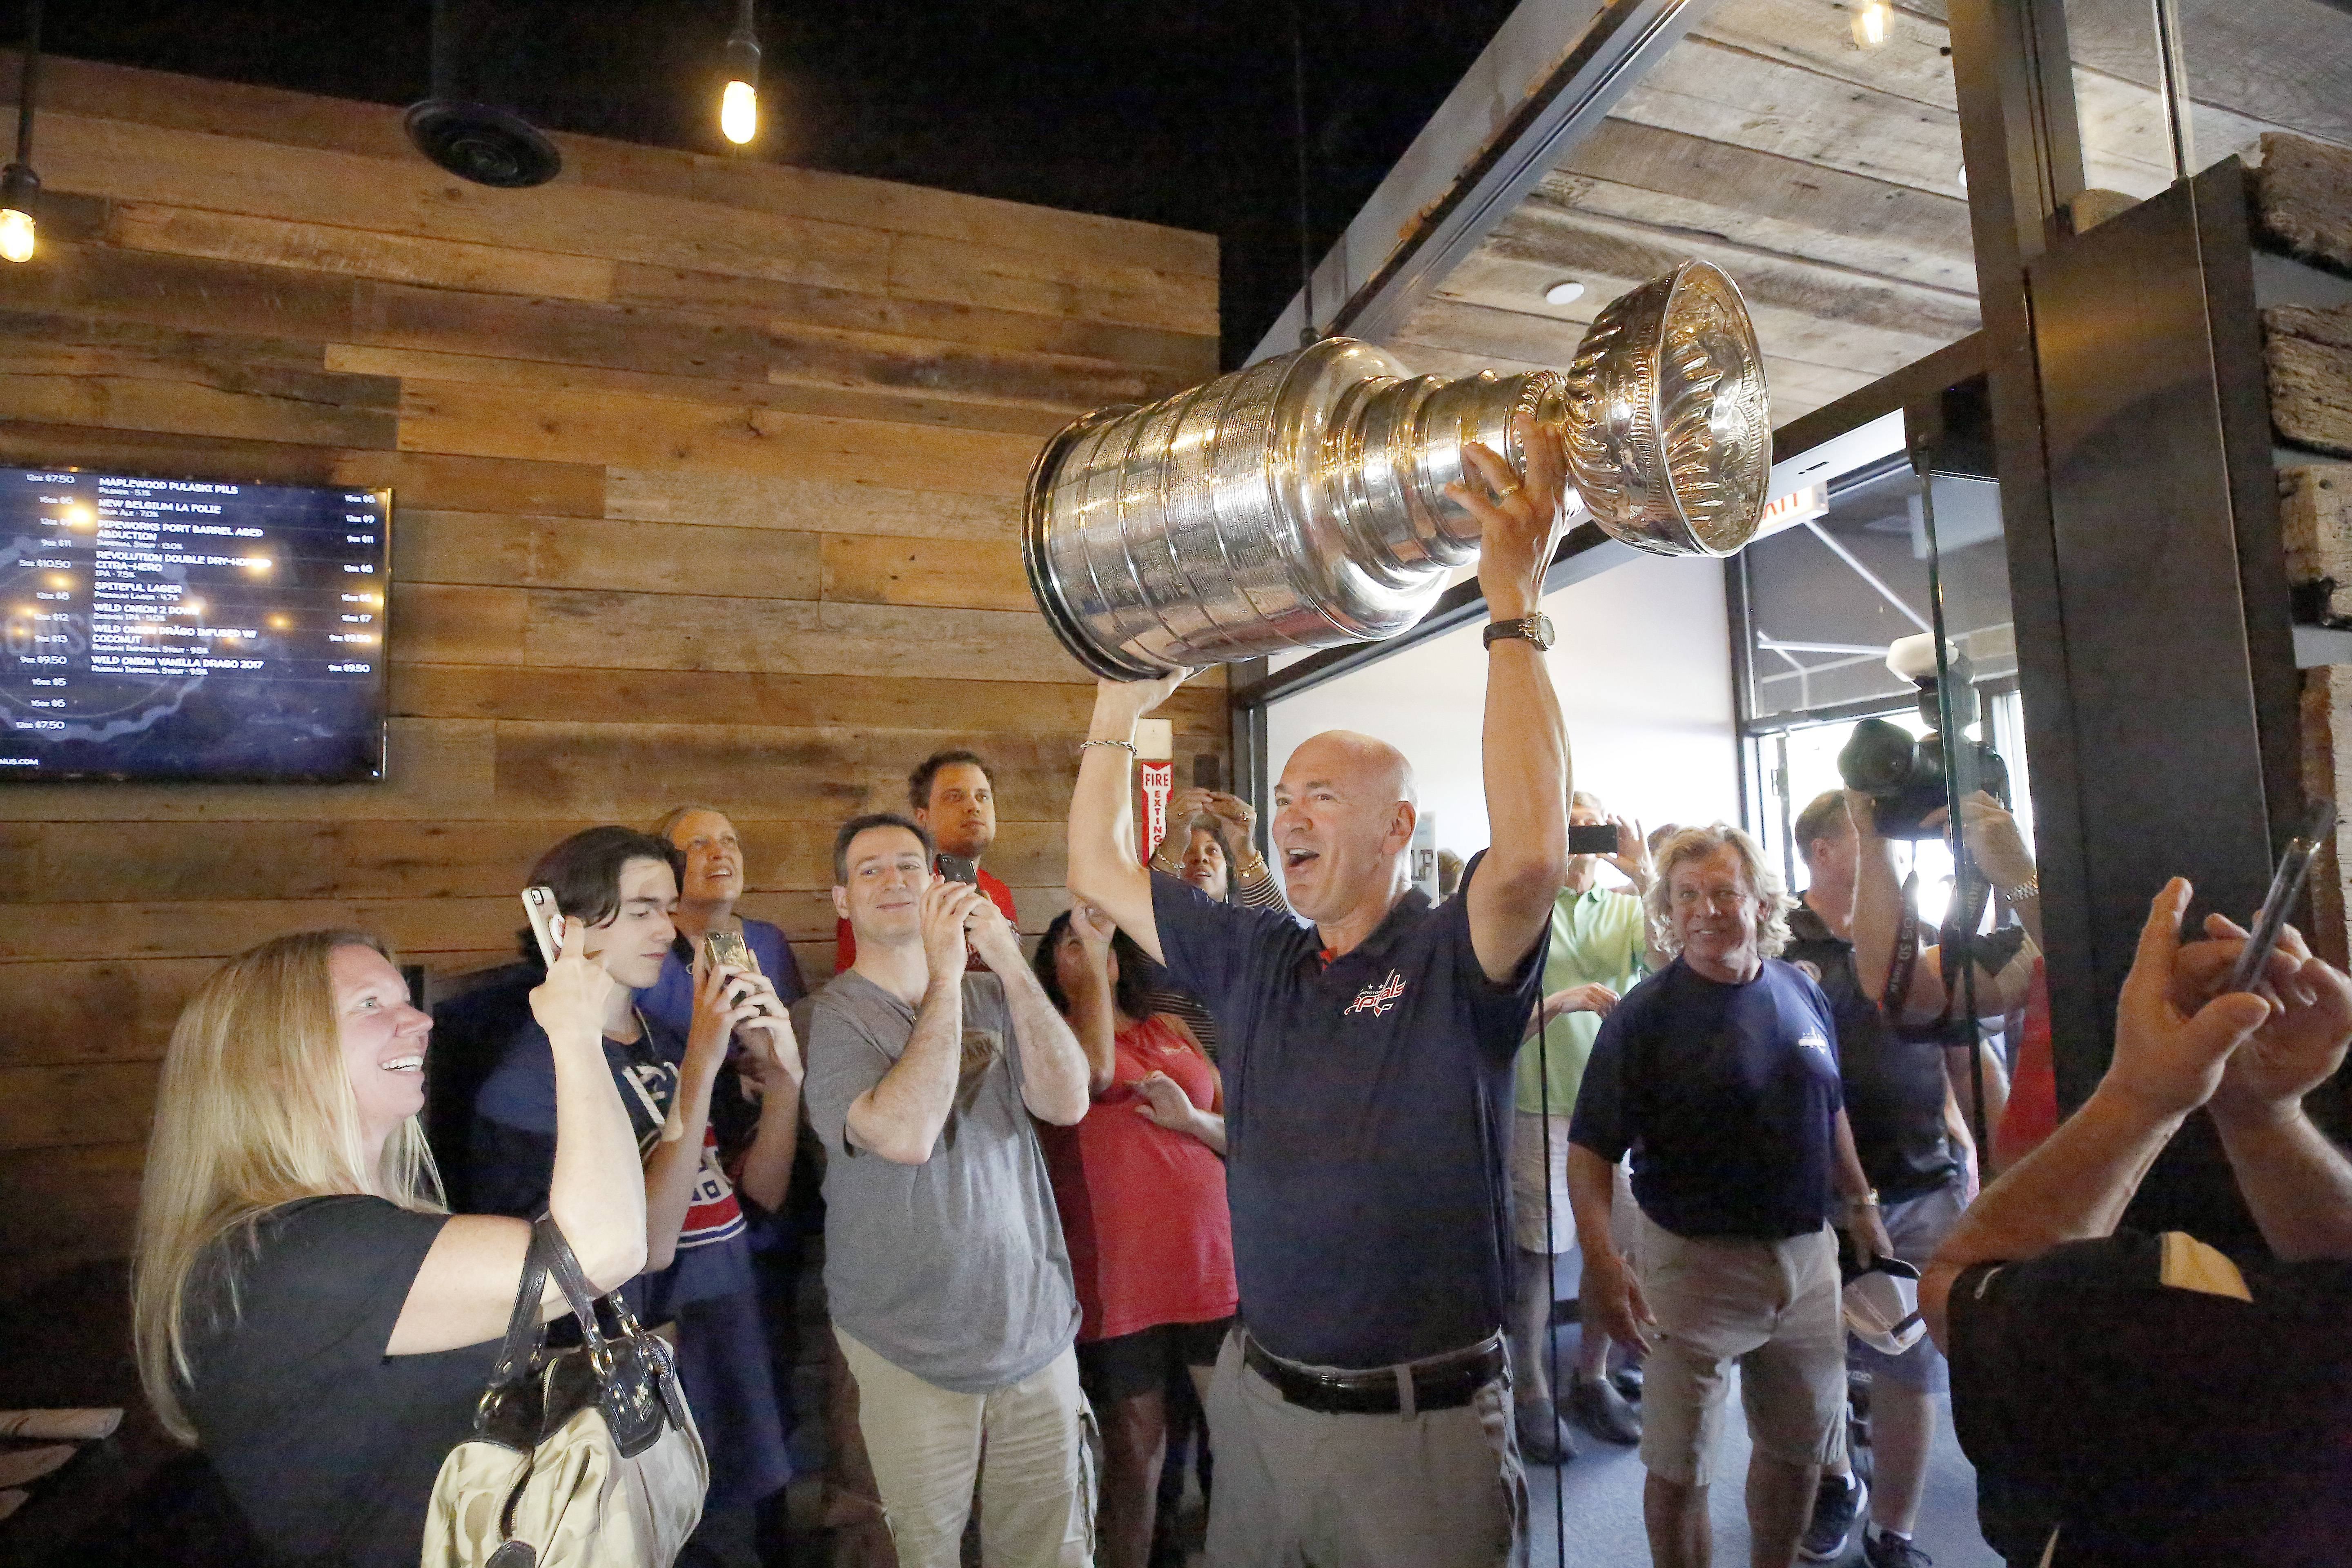 Stanley Cup winner shares sports' most iconic trophy with suburban neighbors